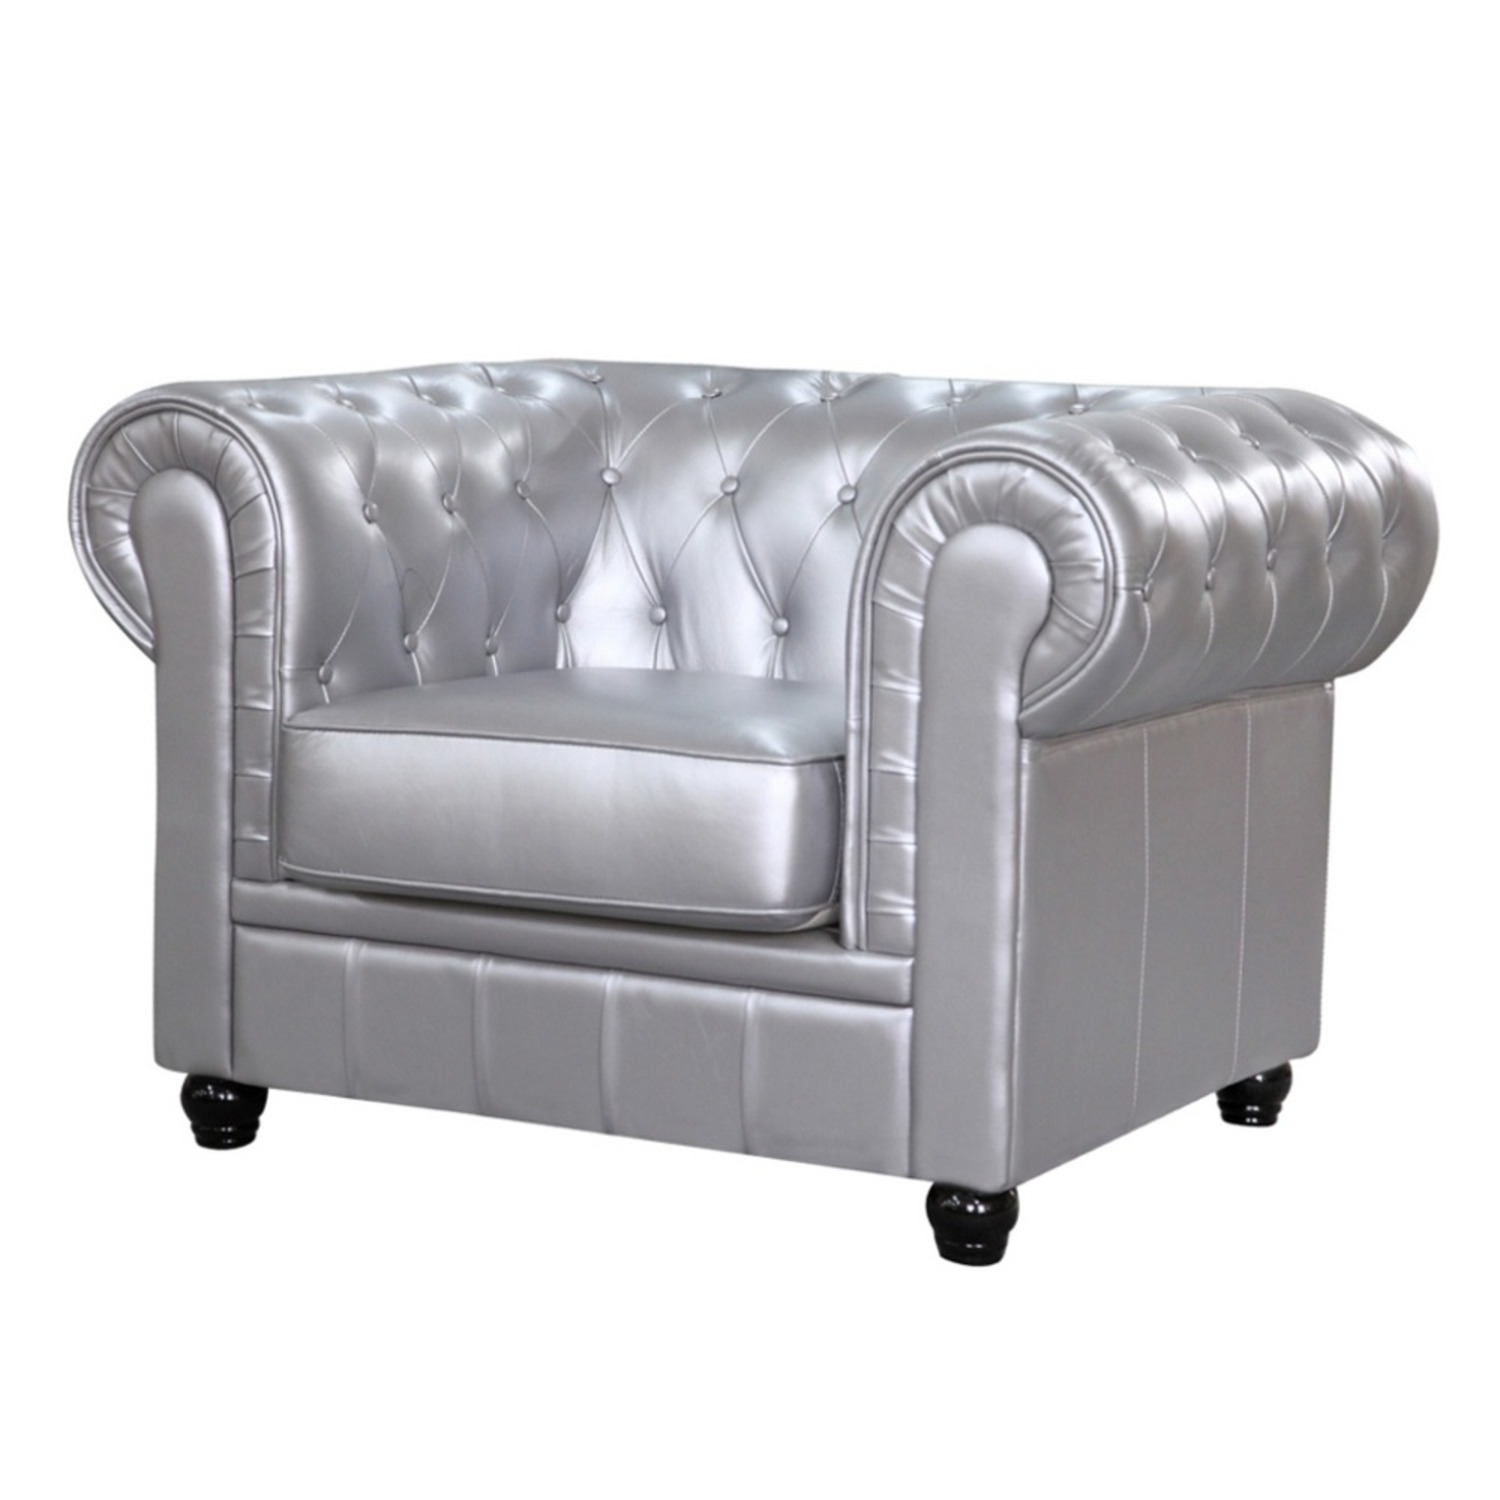 Modern Chair In Soft Silver Leatherette - image-4